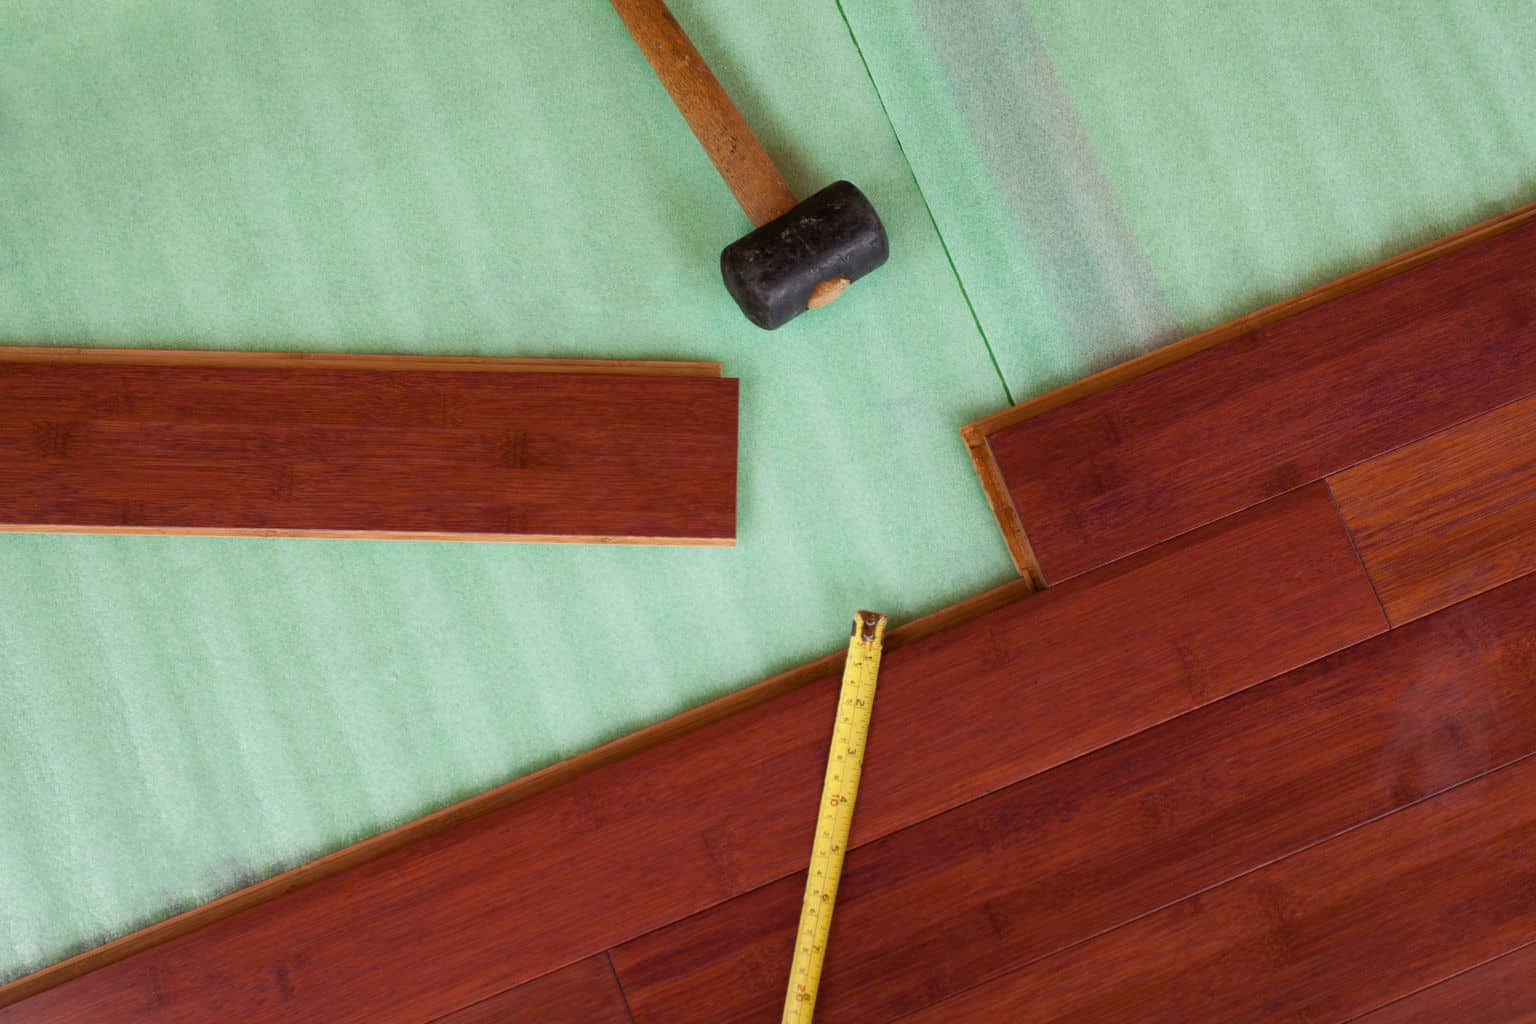 Laminate Floor Underlayment related to laminate flooring How To Install The Underlay That Goes Beneath It The Process Is Rather Simple And Not Too Costly So Virtually Anyone Who Follows The Steps Closely